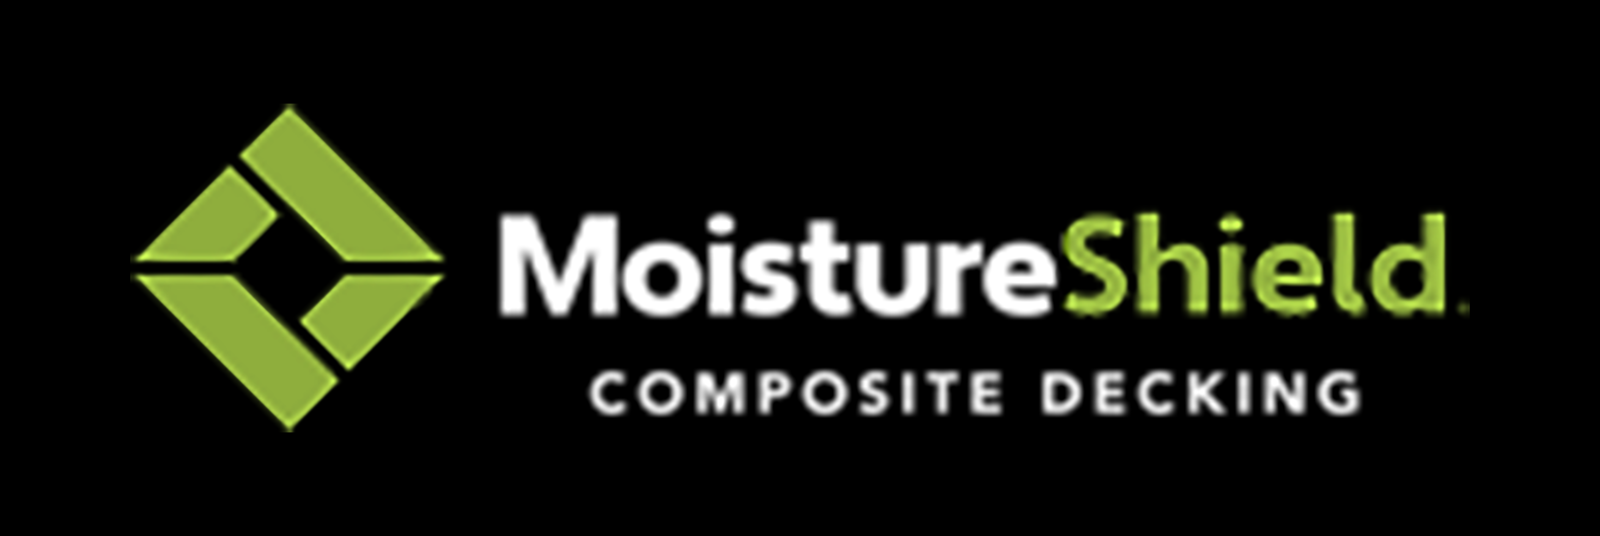 moistureshield-logo-black